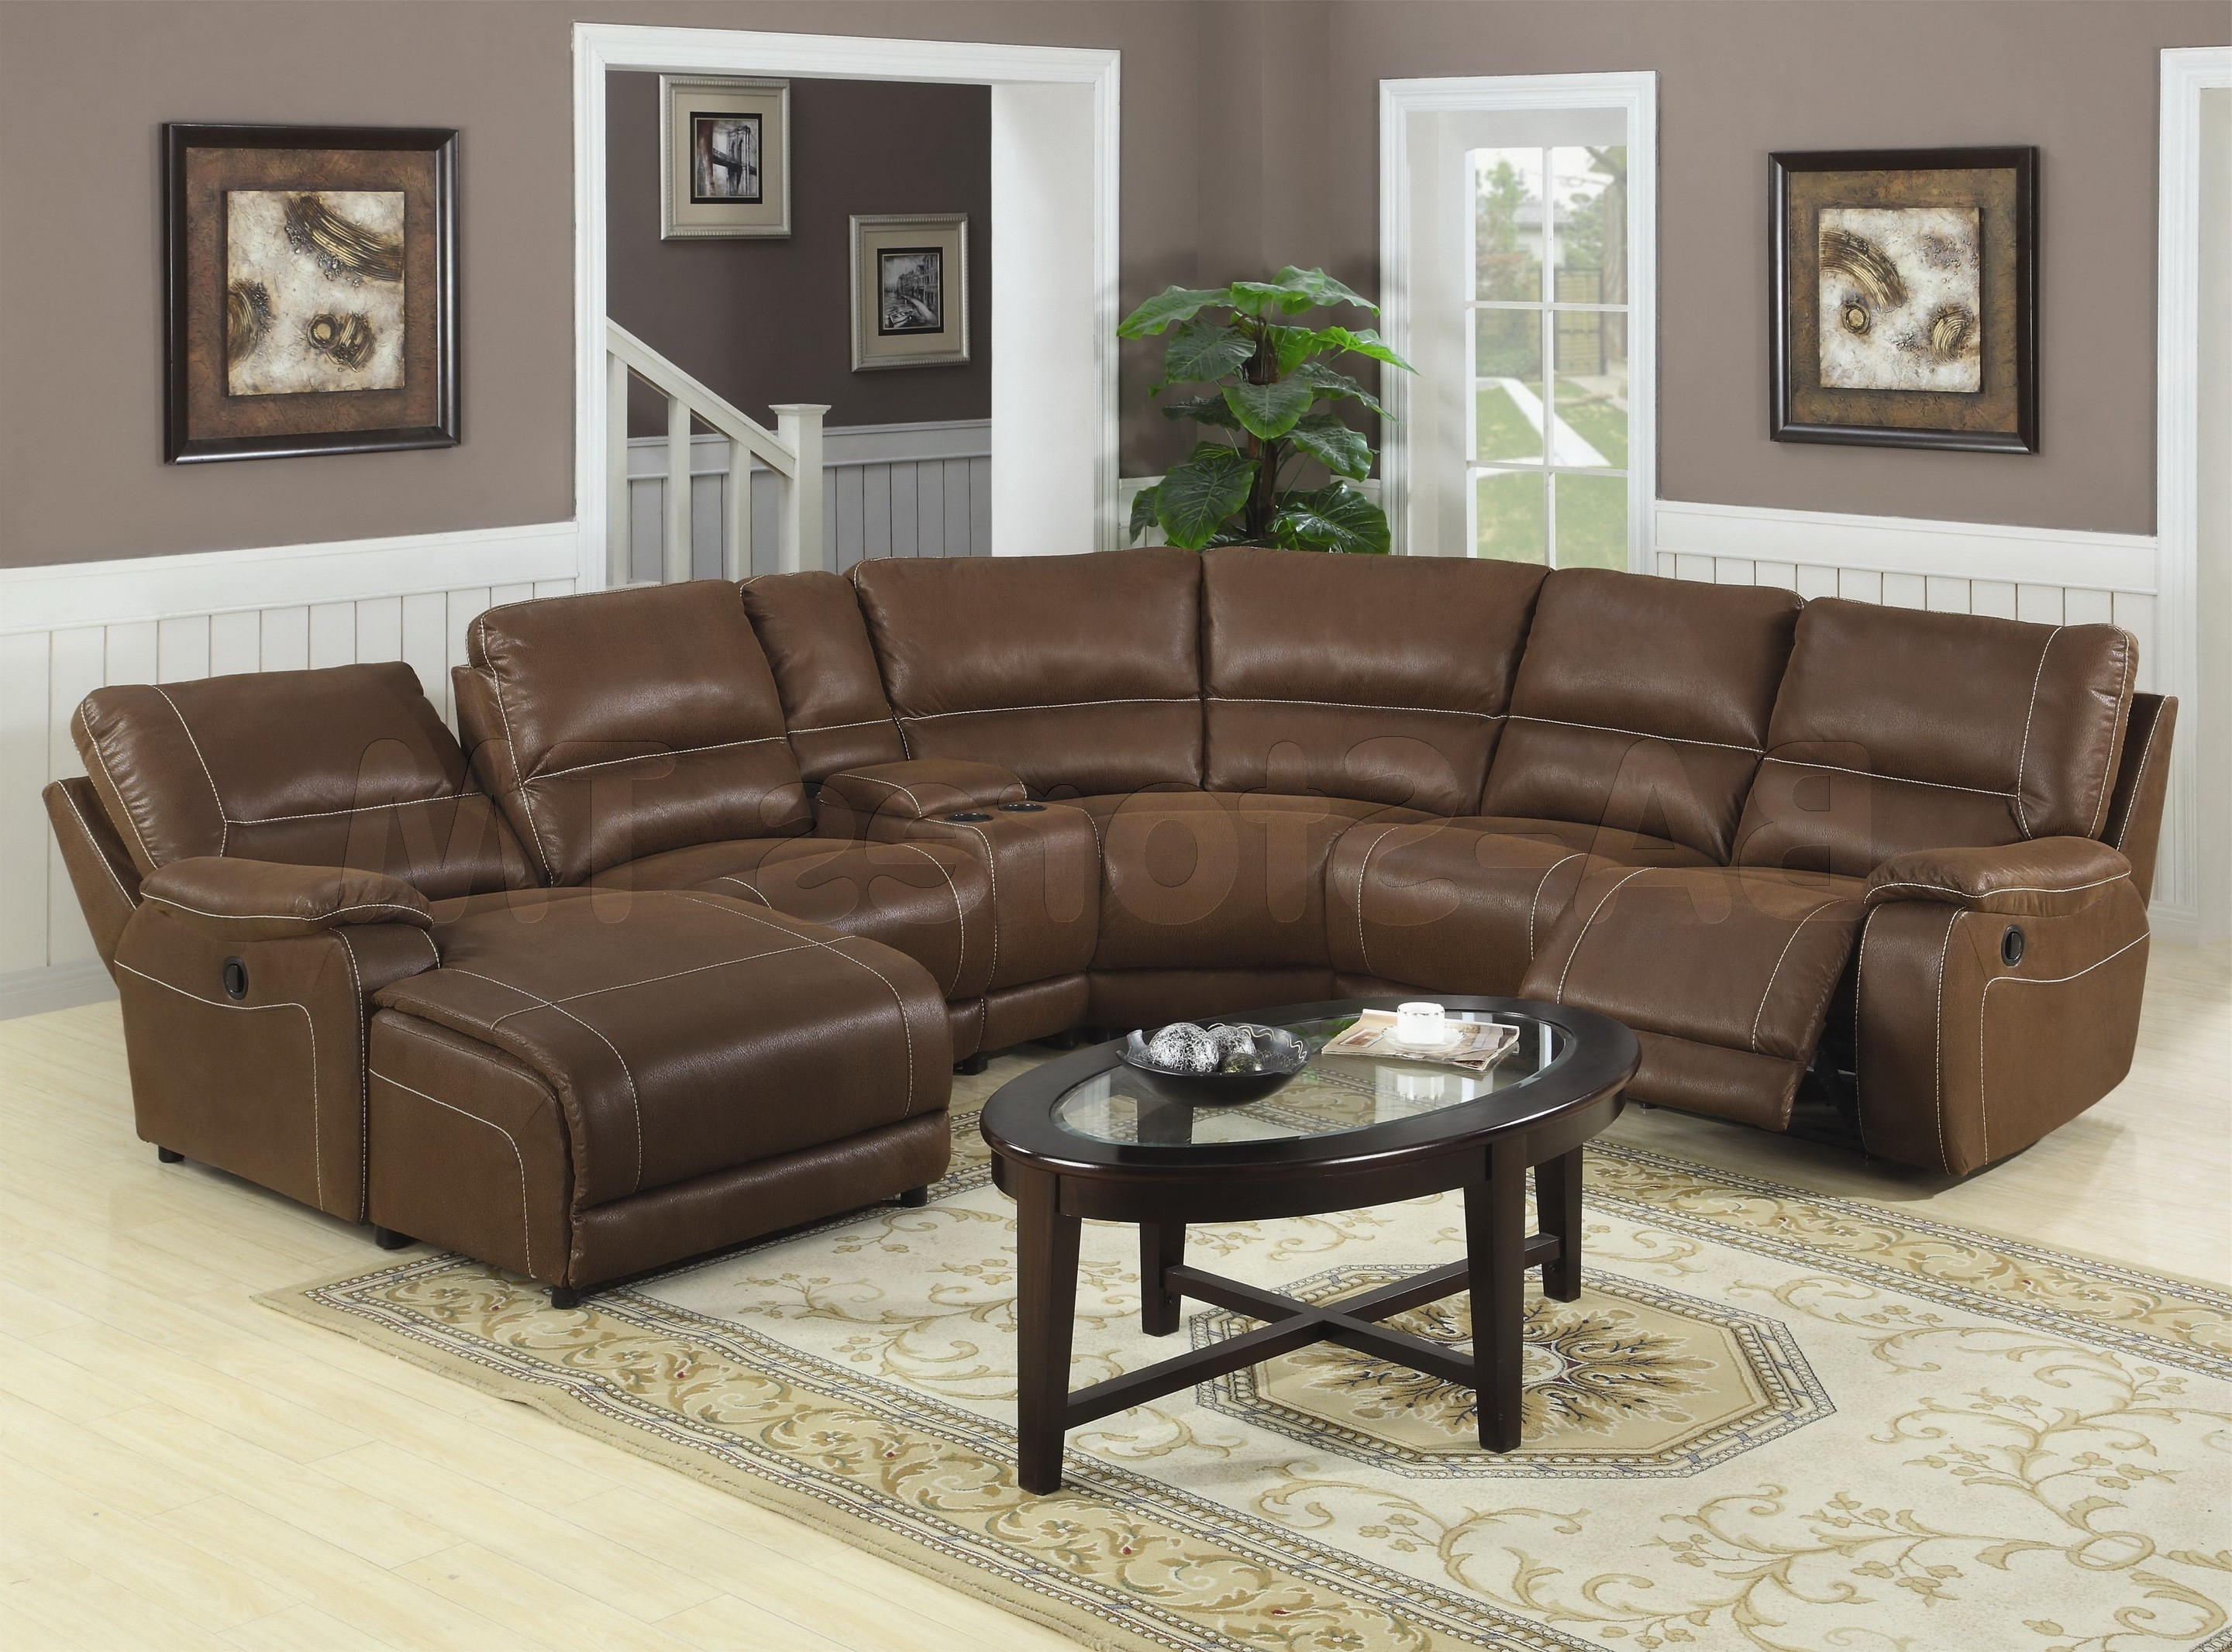 Recent Sectional Sofas Decorating In Living Room : Living Room Furniture Sectional Modern Sofa Brown (View 20 of 20)